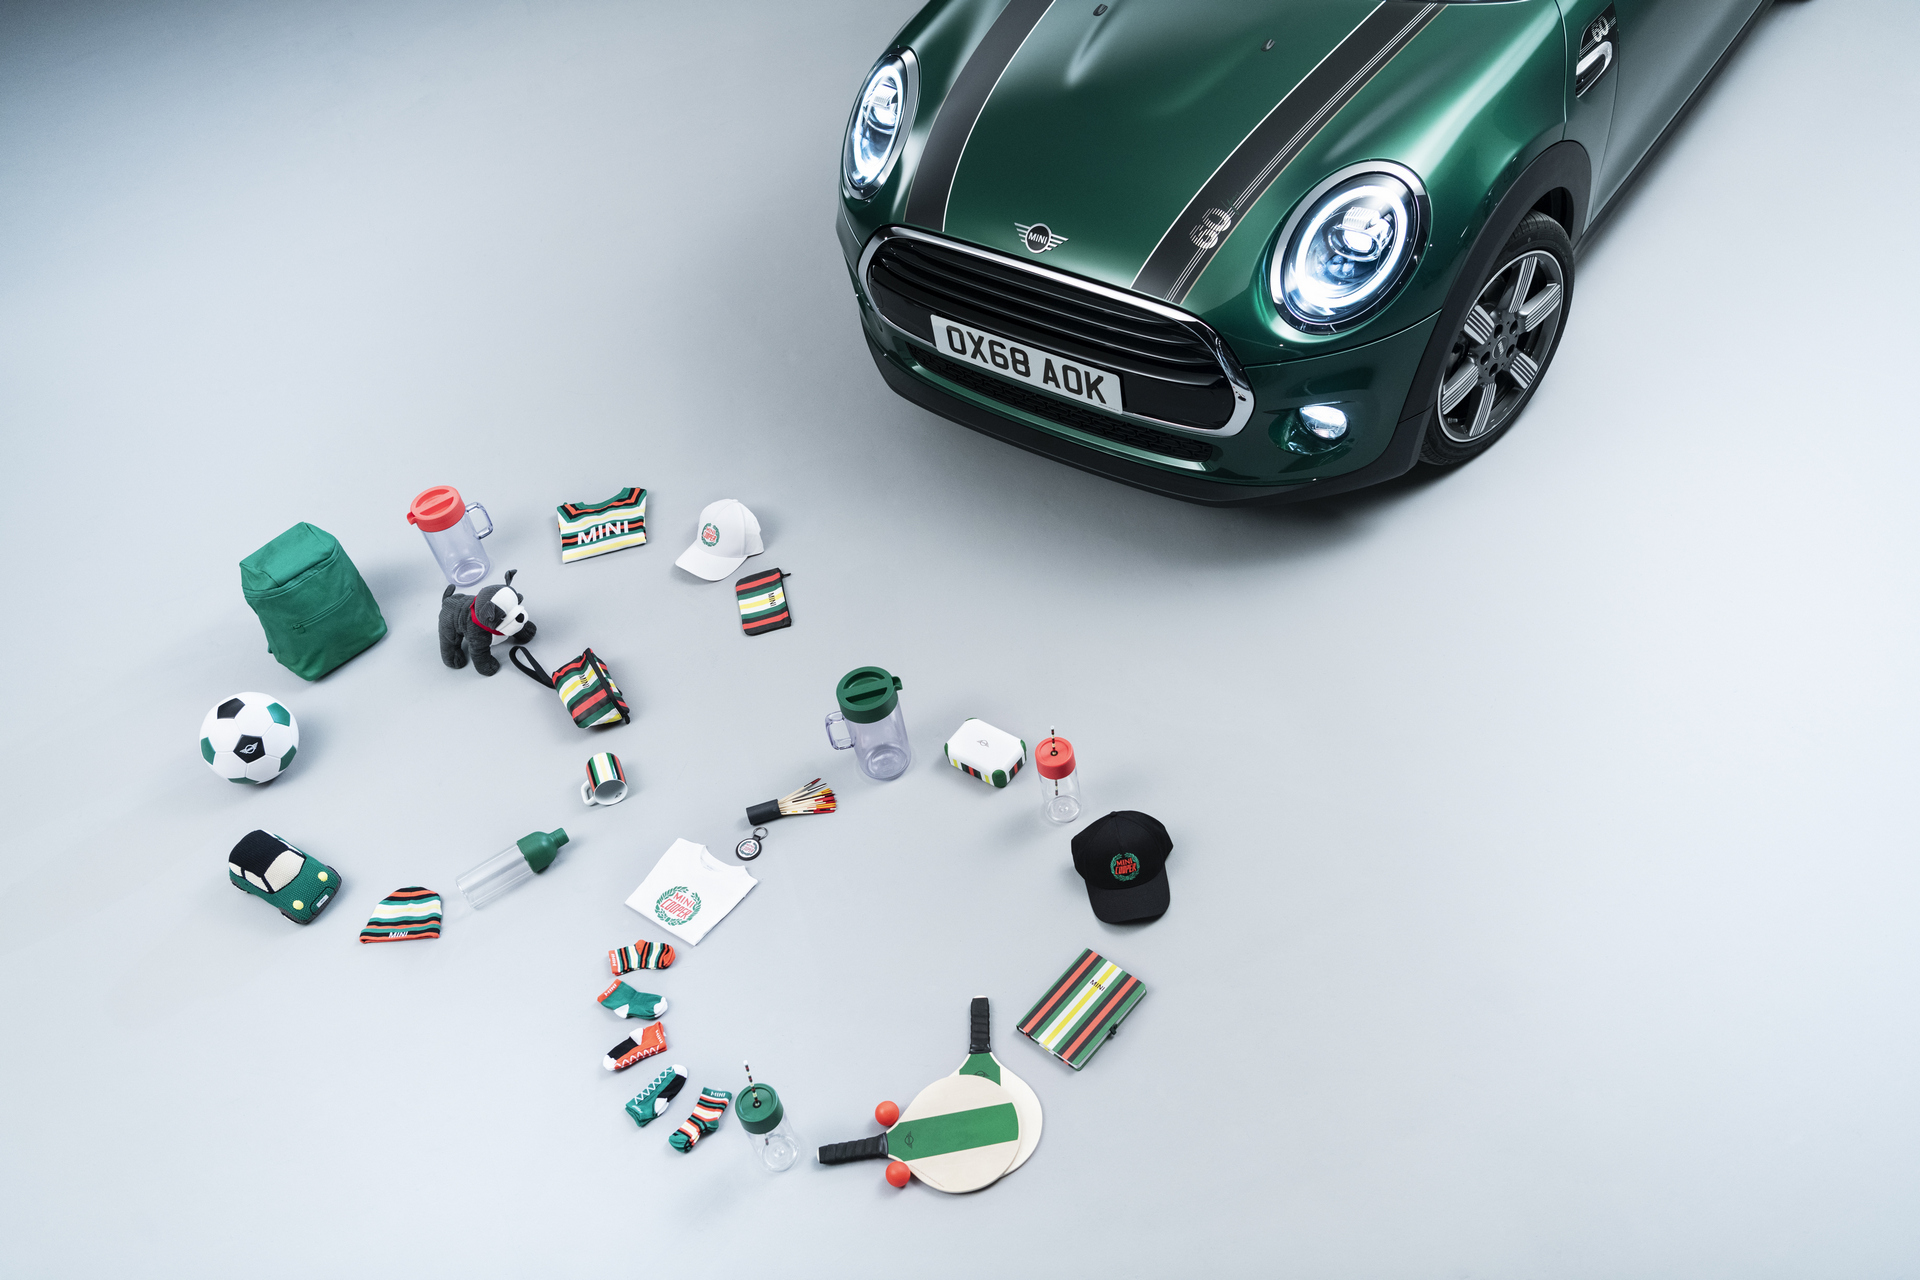 mini celebrates turning 60 with 60 months of free servicing